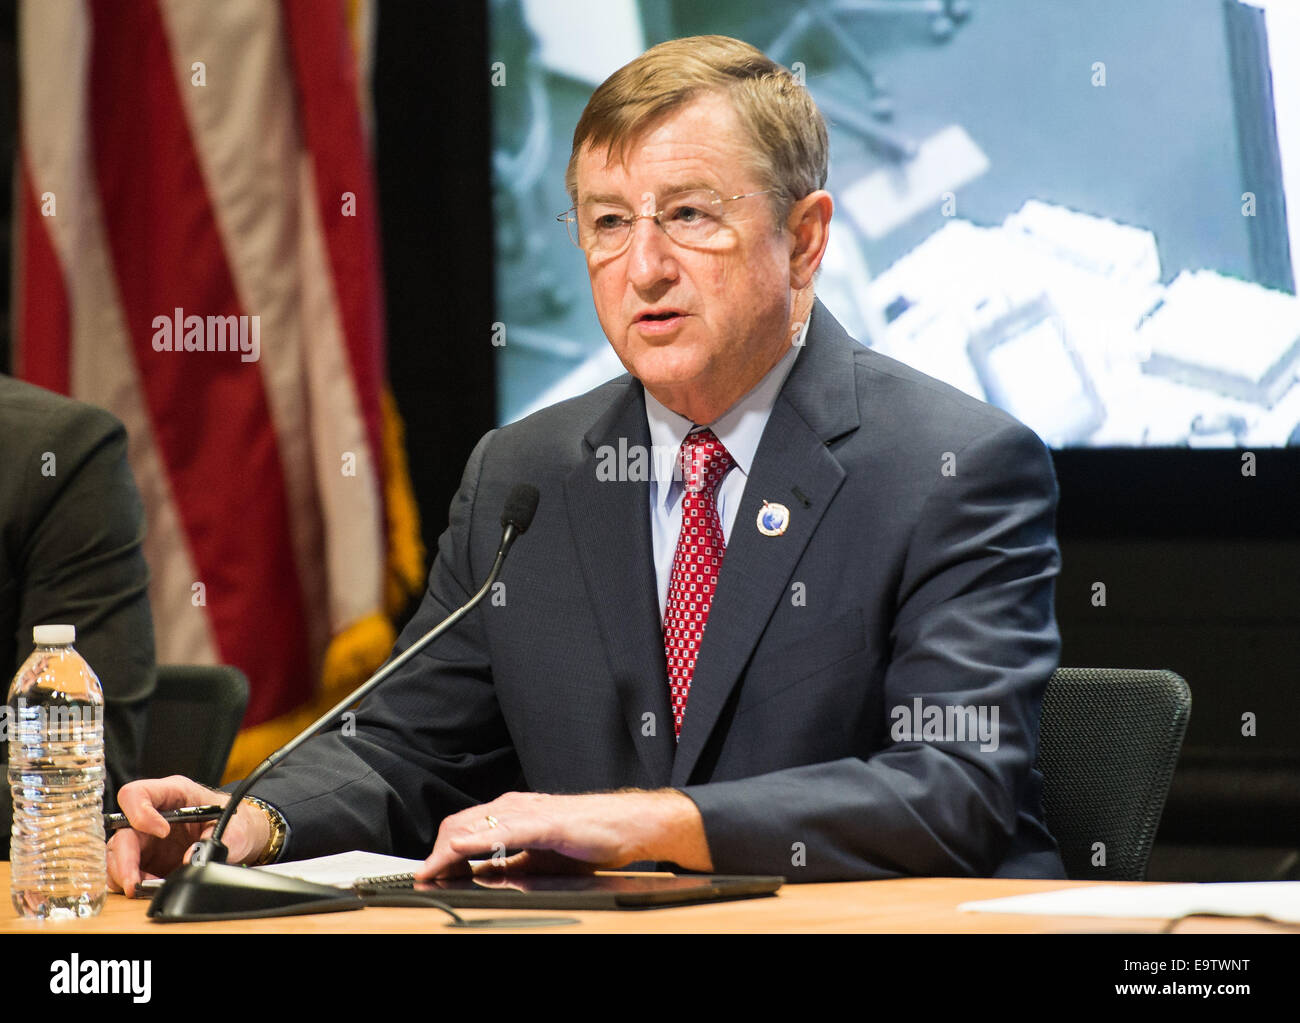 Frank Culbertson, Executive Vice President and General Manager of Advanced Program Group at Orbital Sciences Corp. Stock Photo